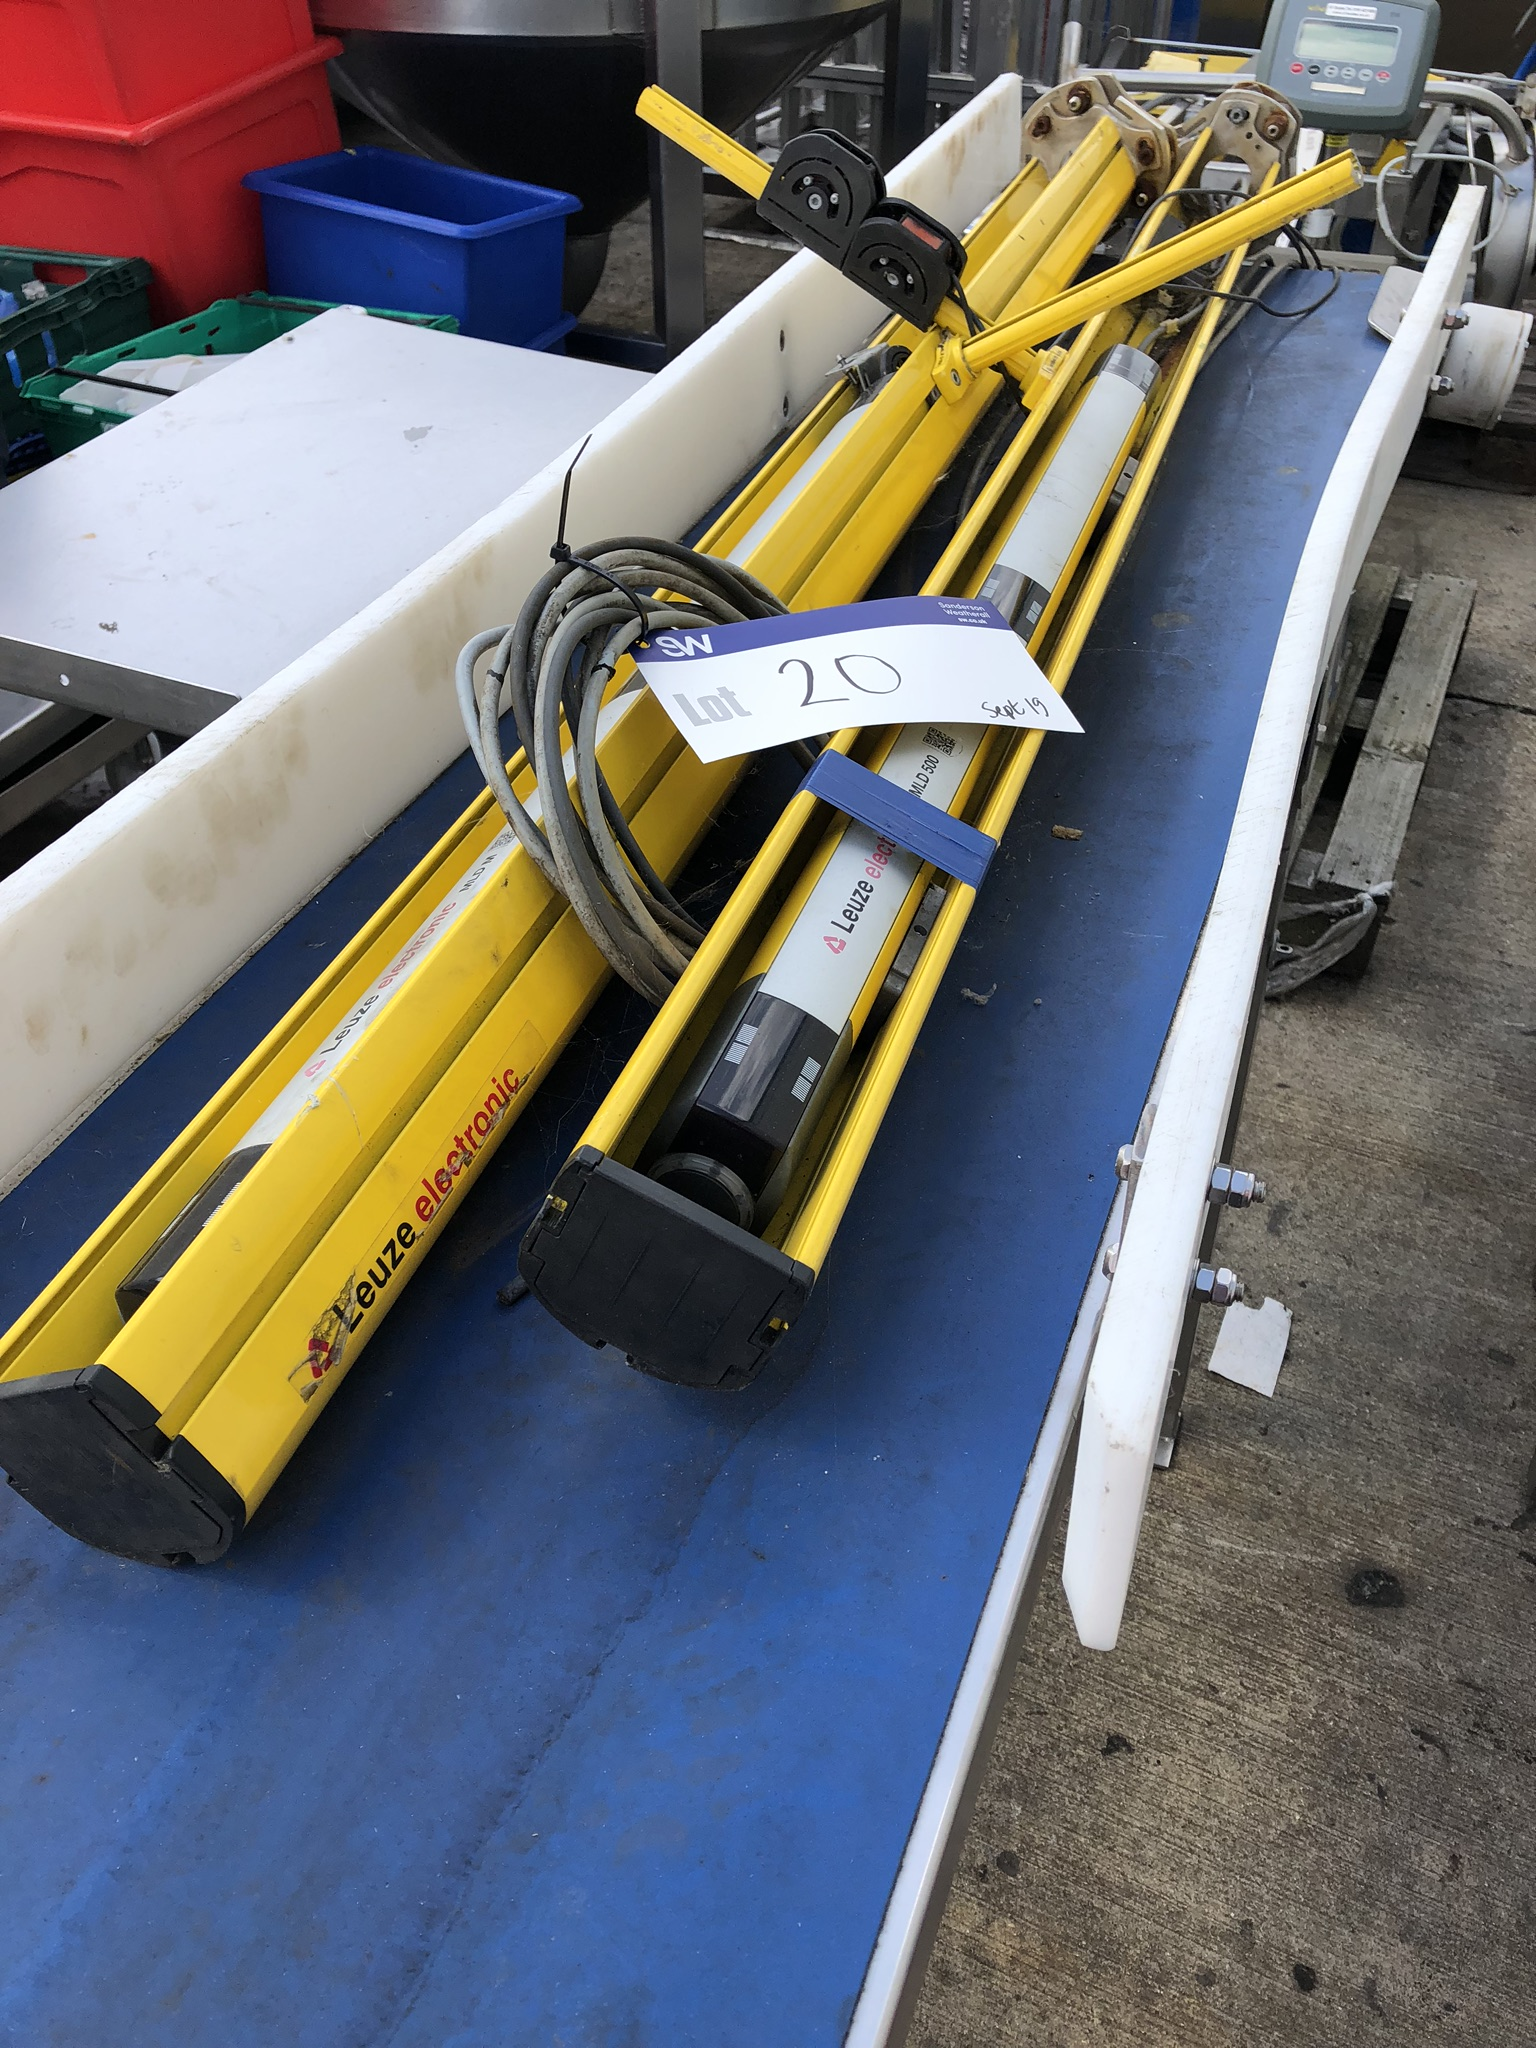 Two Leuze Electronic MLD 500 Safety Guards, lift out charge - £20